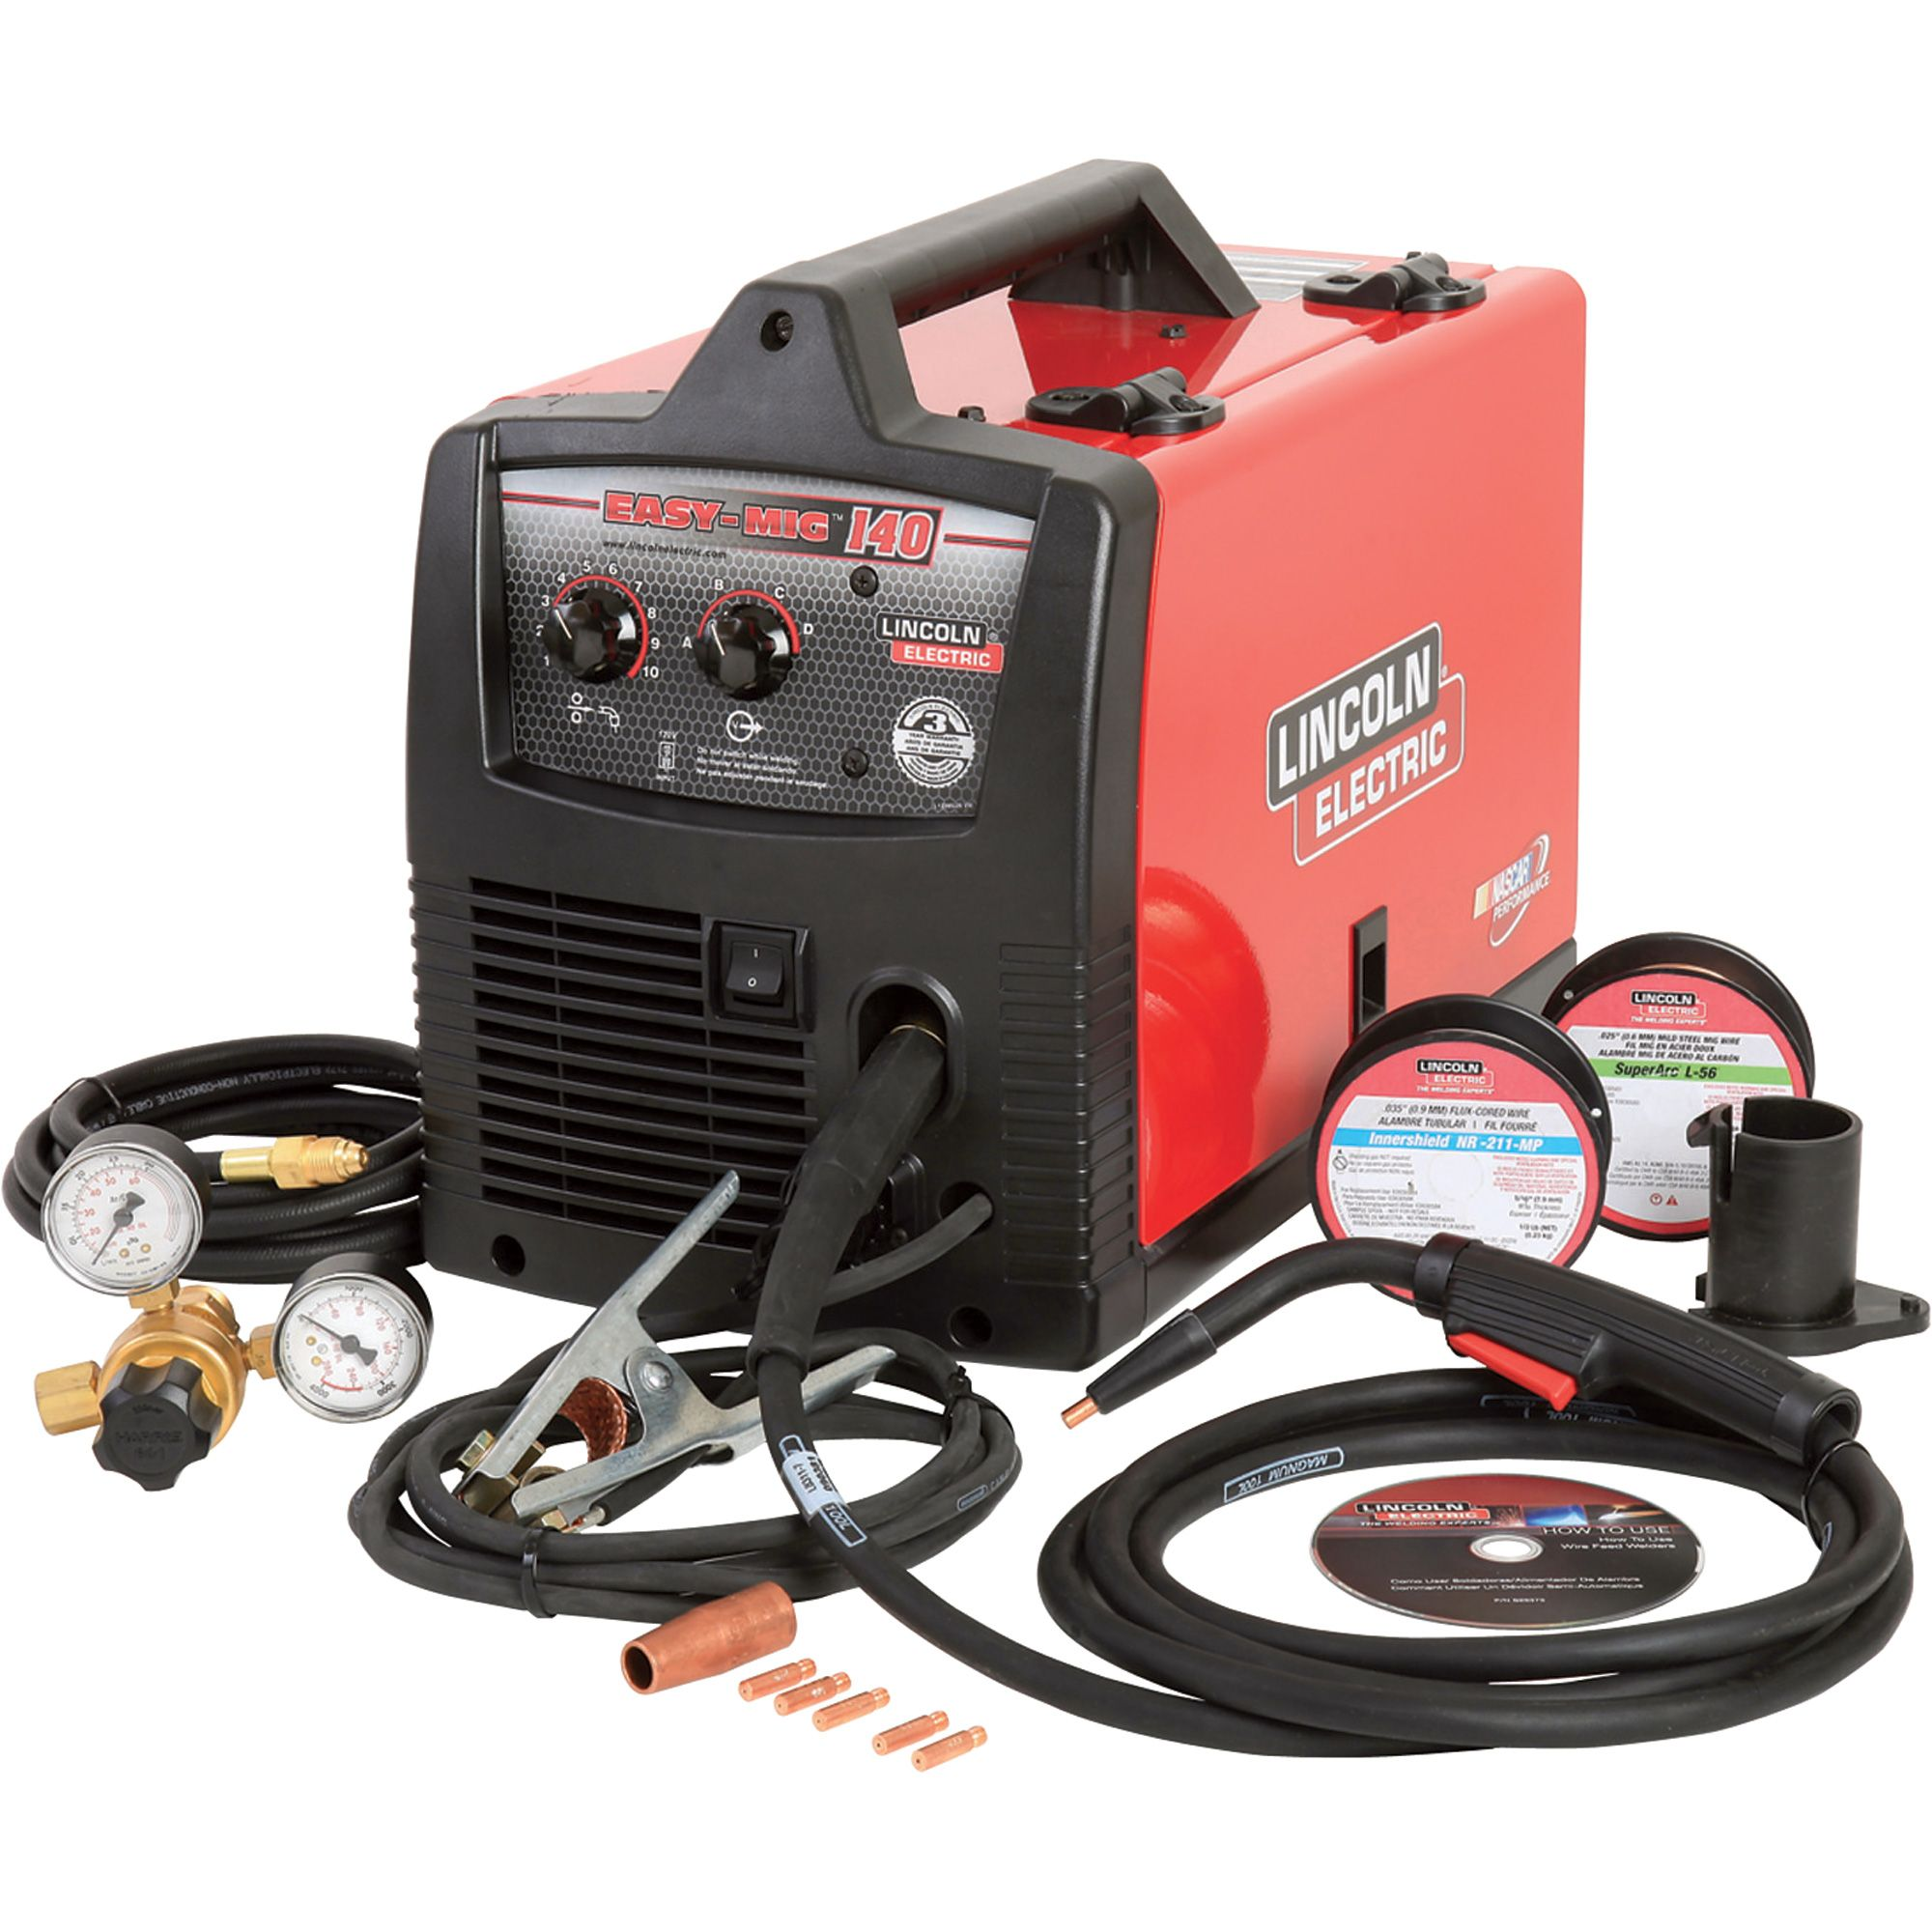 lincoln electric easy mig 140 flux cored mig welder \u2014 transformerFree Shipping Lincoln Electric Easy Mig 140 Fluxcore Mig Welder #2